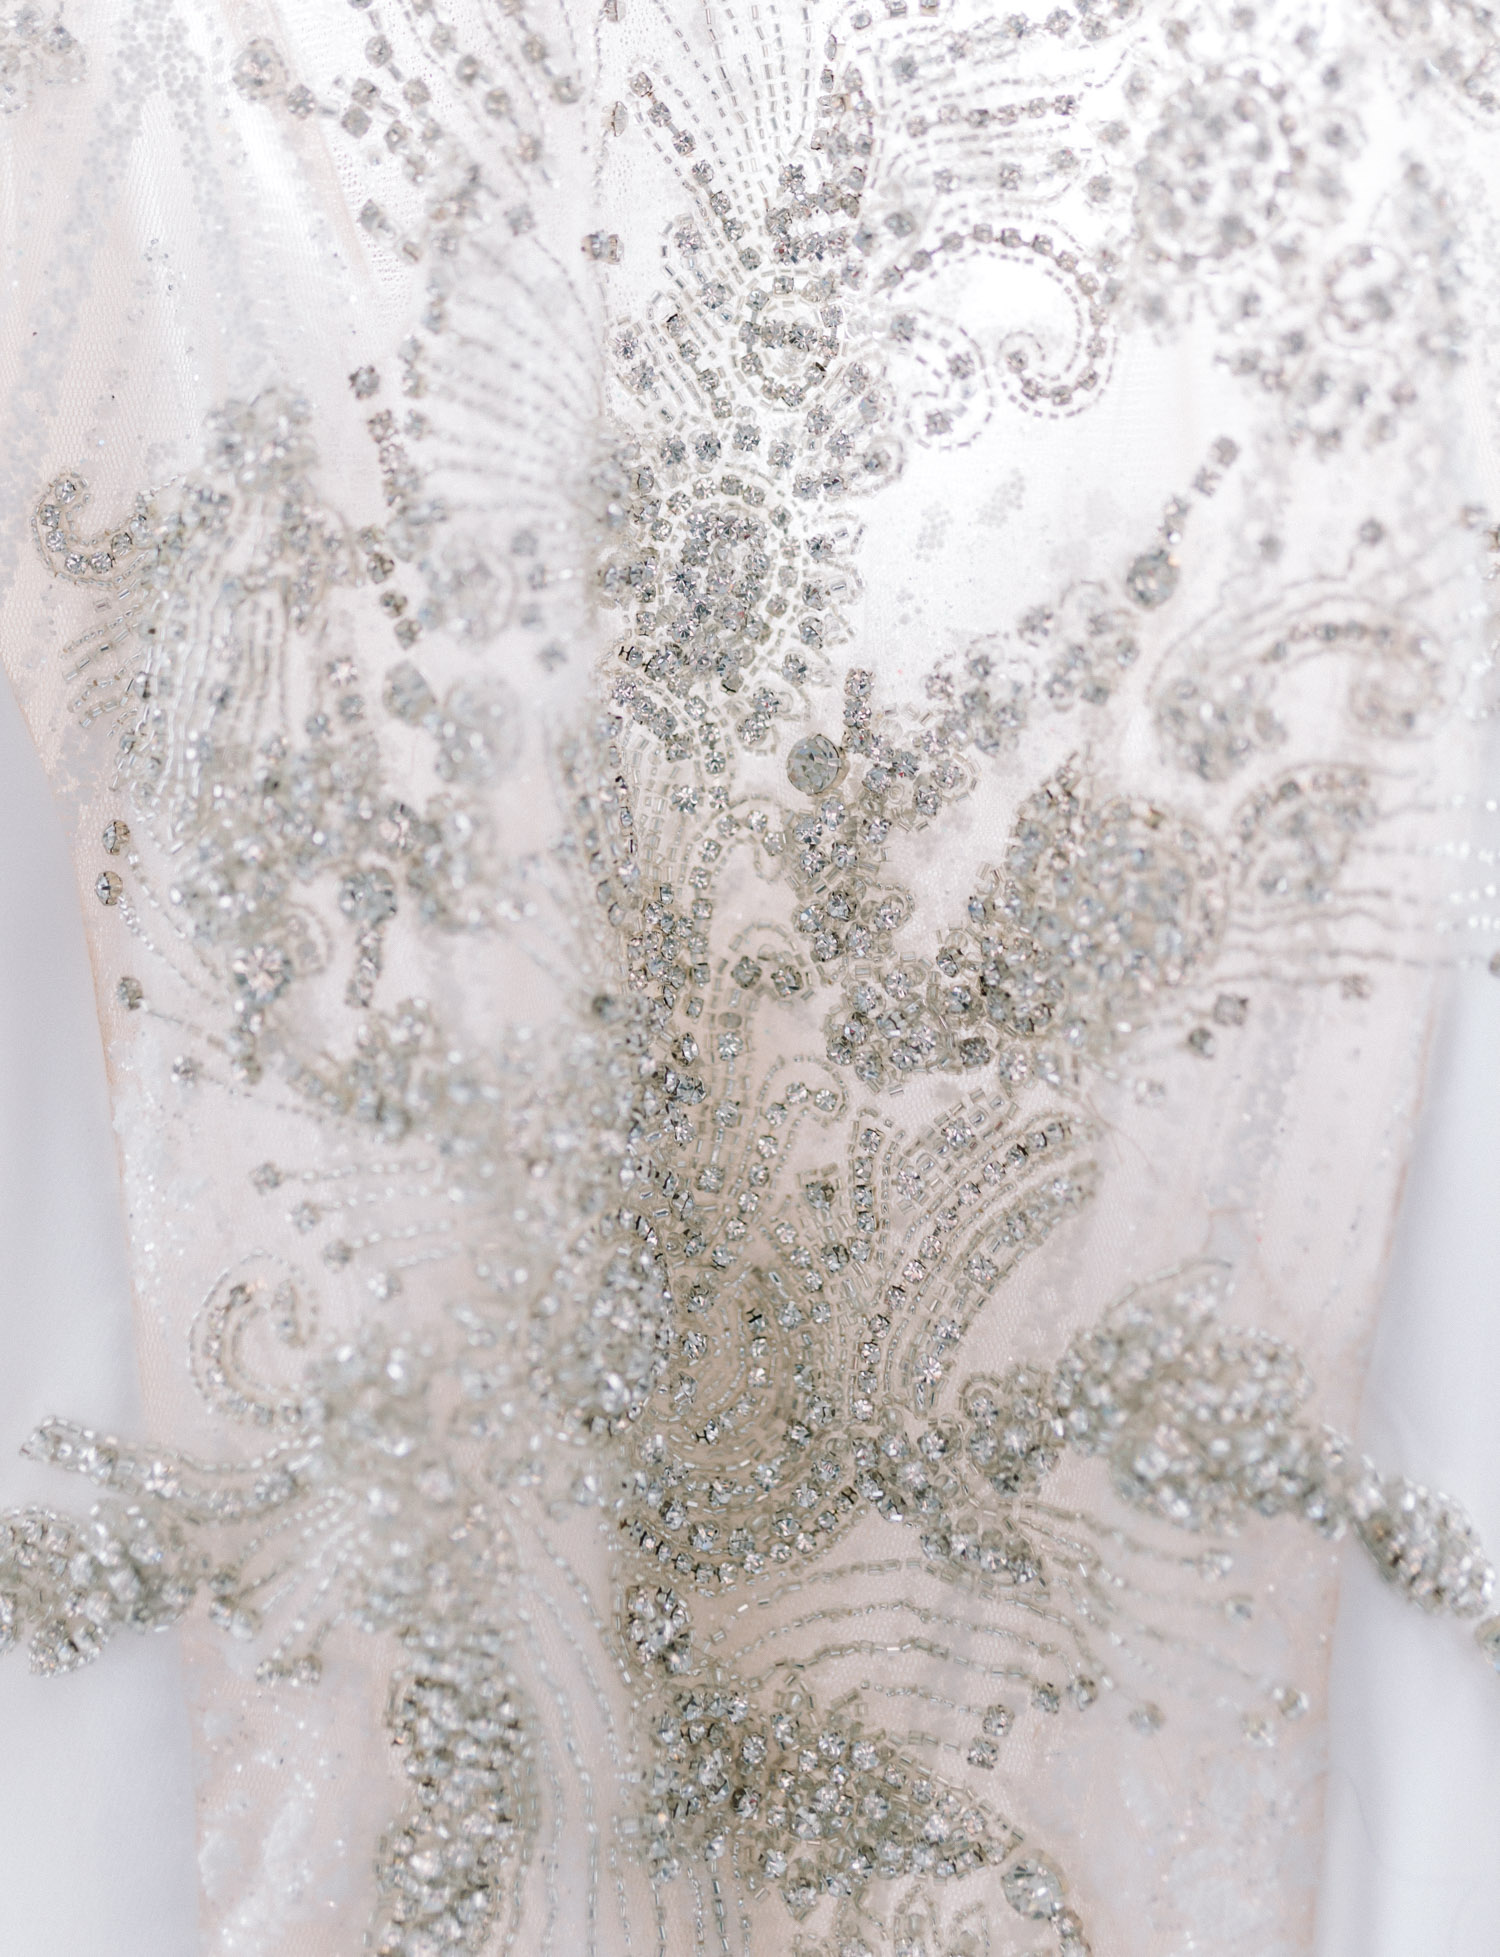 Close detail of a wedding dress with a sheer bodice and intricate beading and crystal detail for a same-sex New York City wedding